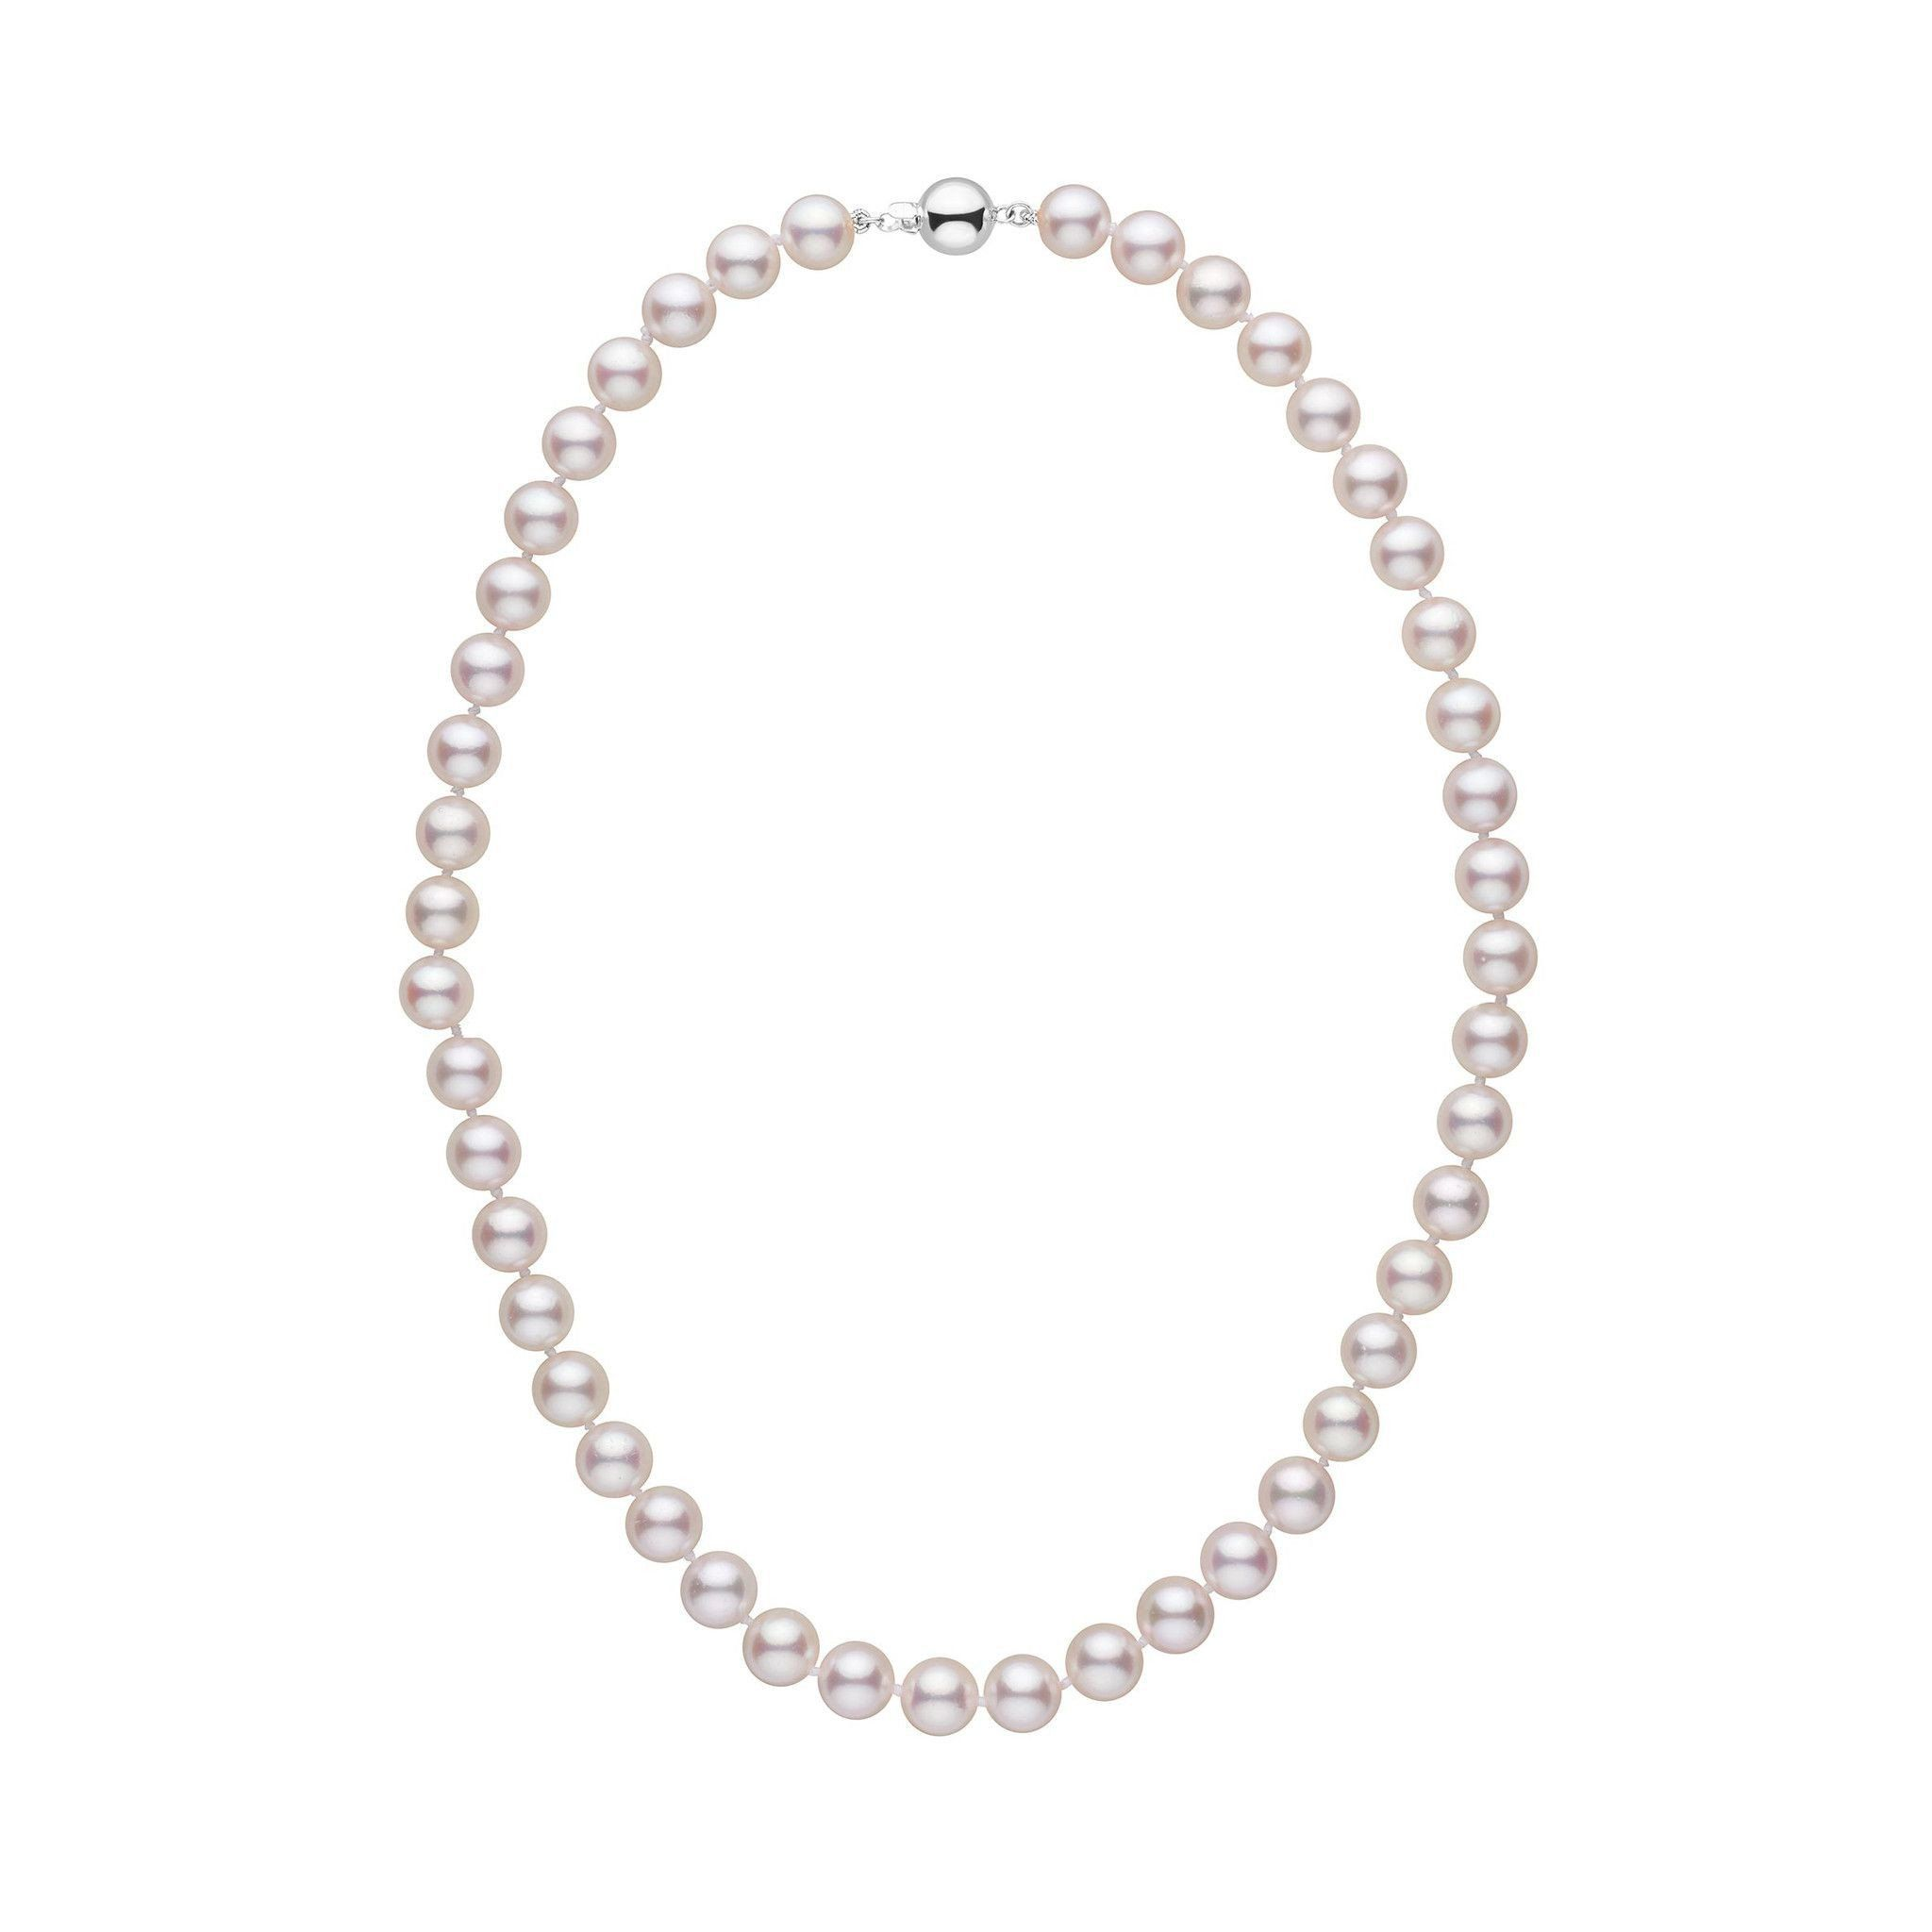 8.0-8.5 mm 16 Inch AA+ White Akoya Pearl Necklace